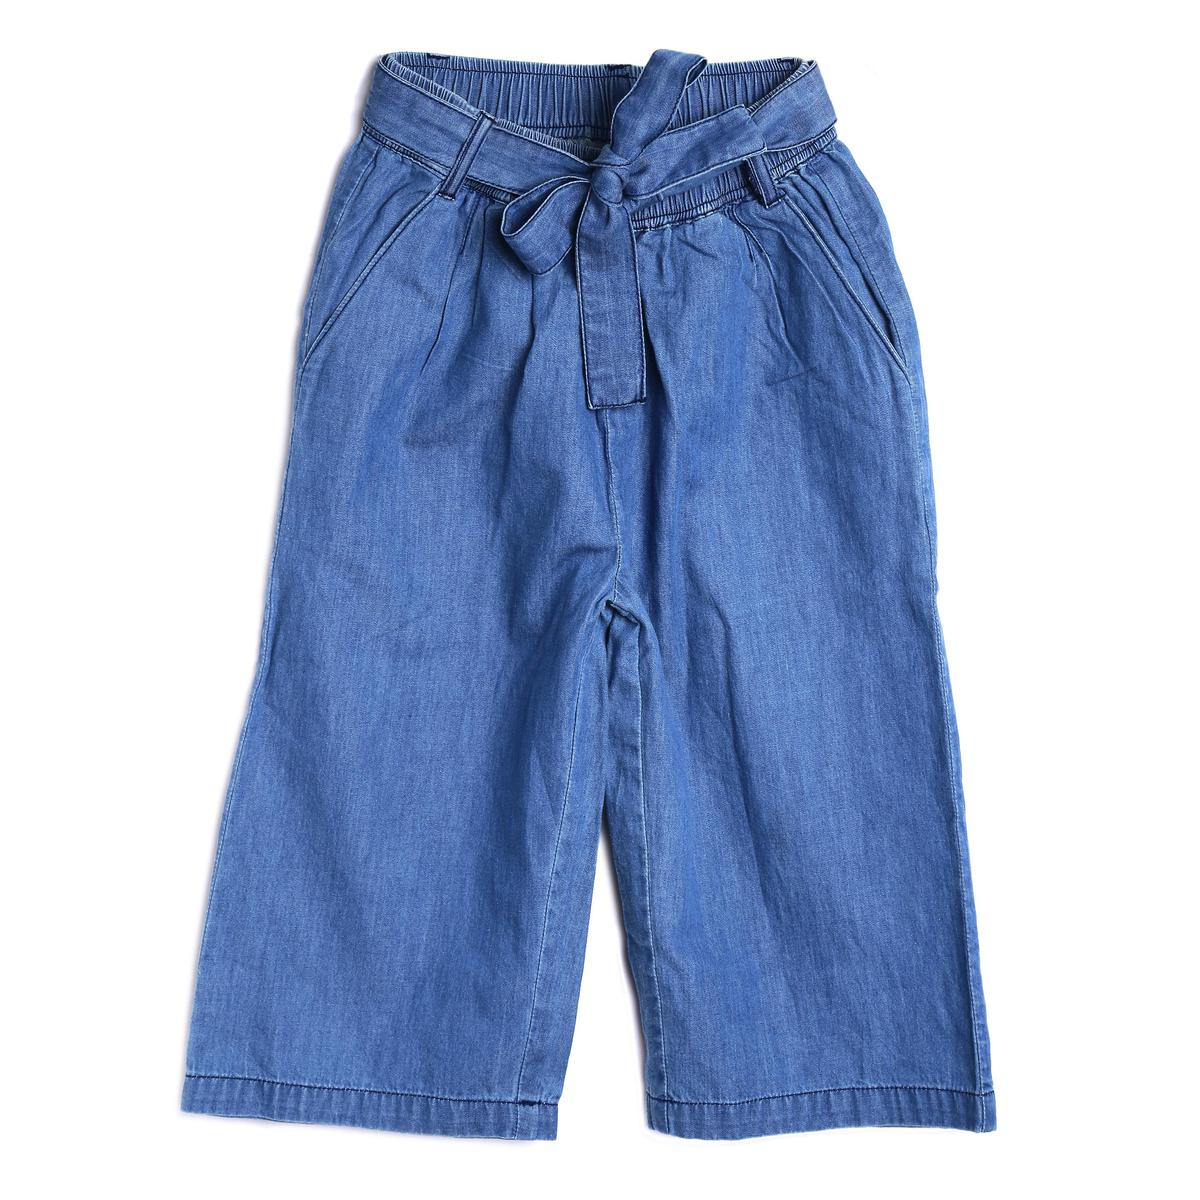 612 League - Blue Colored Cotton Denim Cullotes For Girls